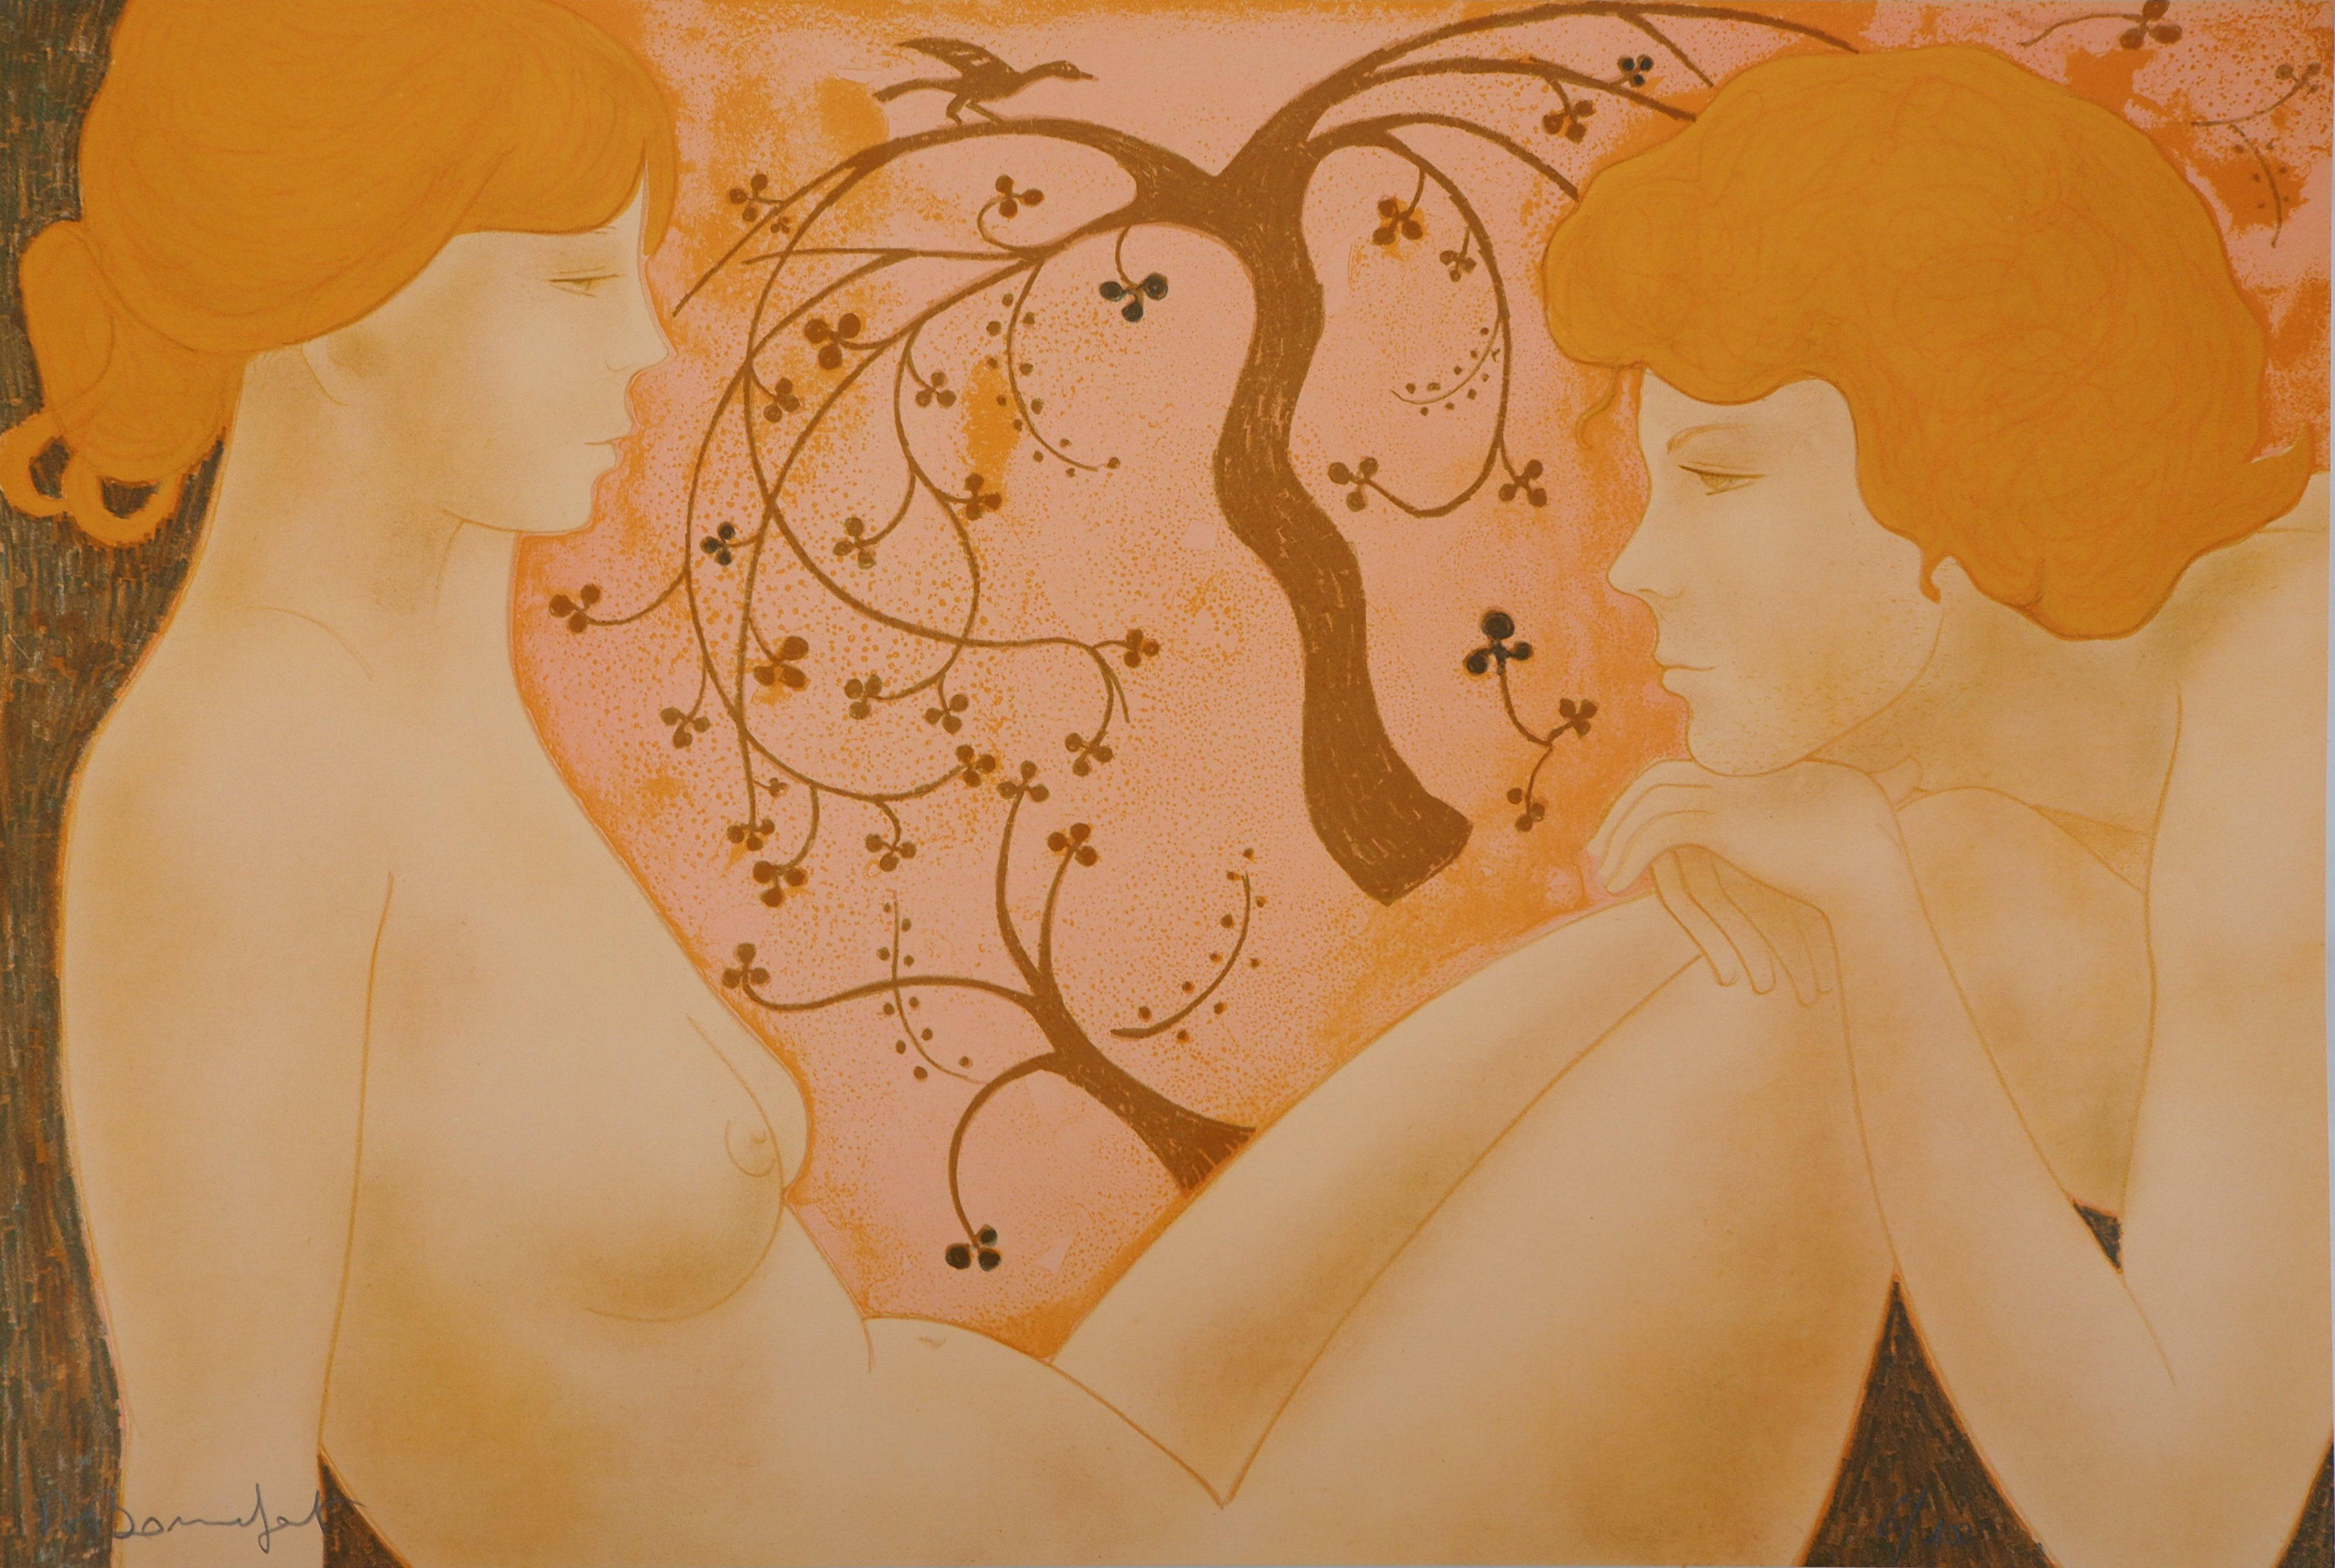 The Lovers - Original lithograph, Handsigned and Numbered /100